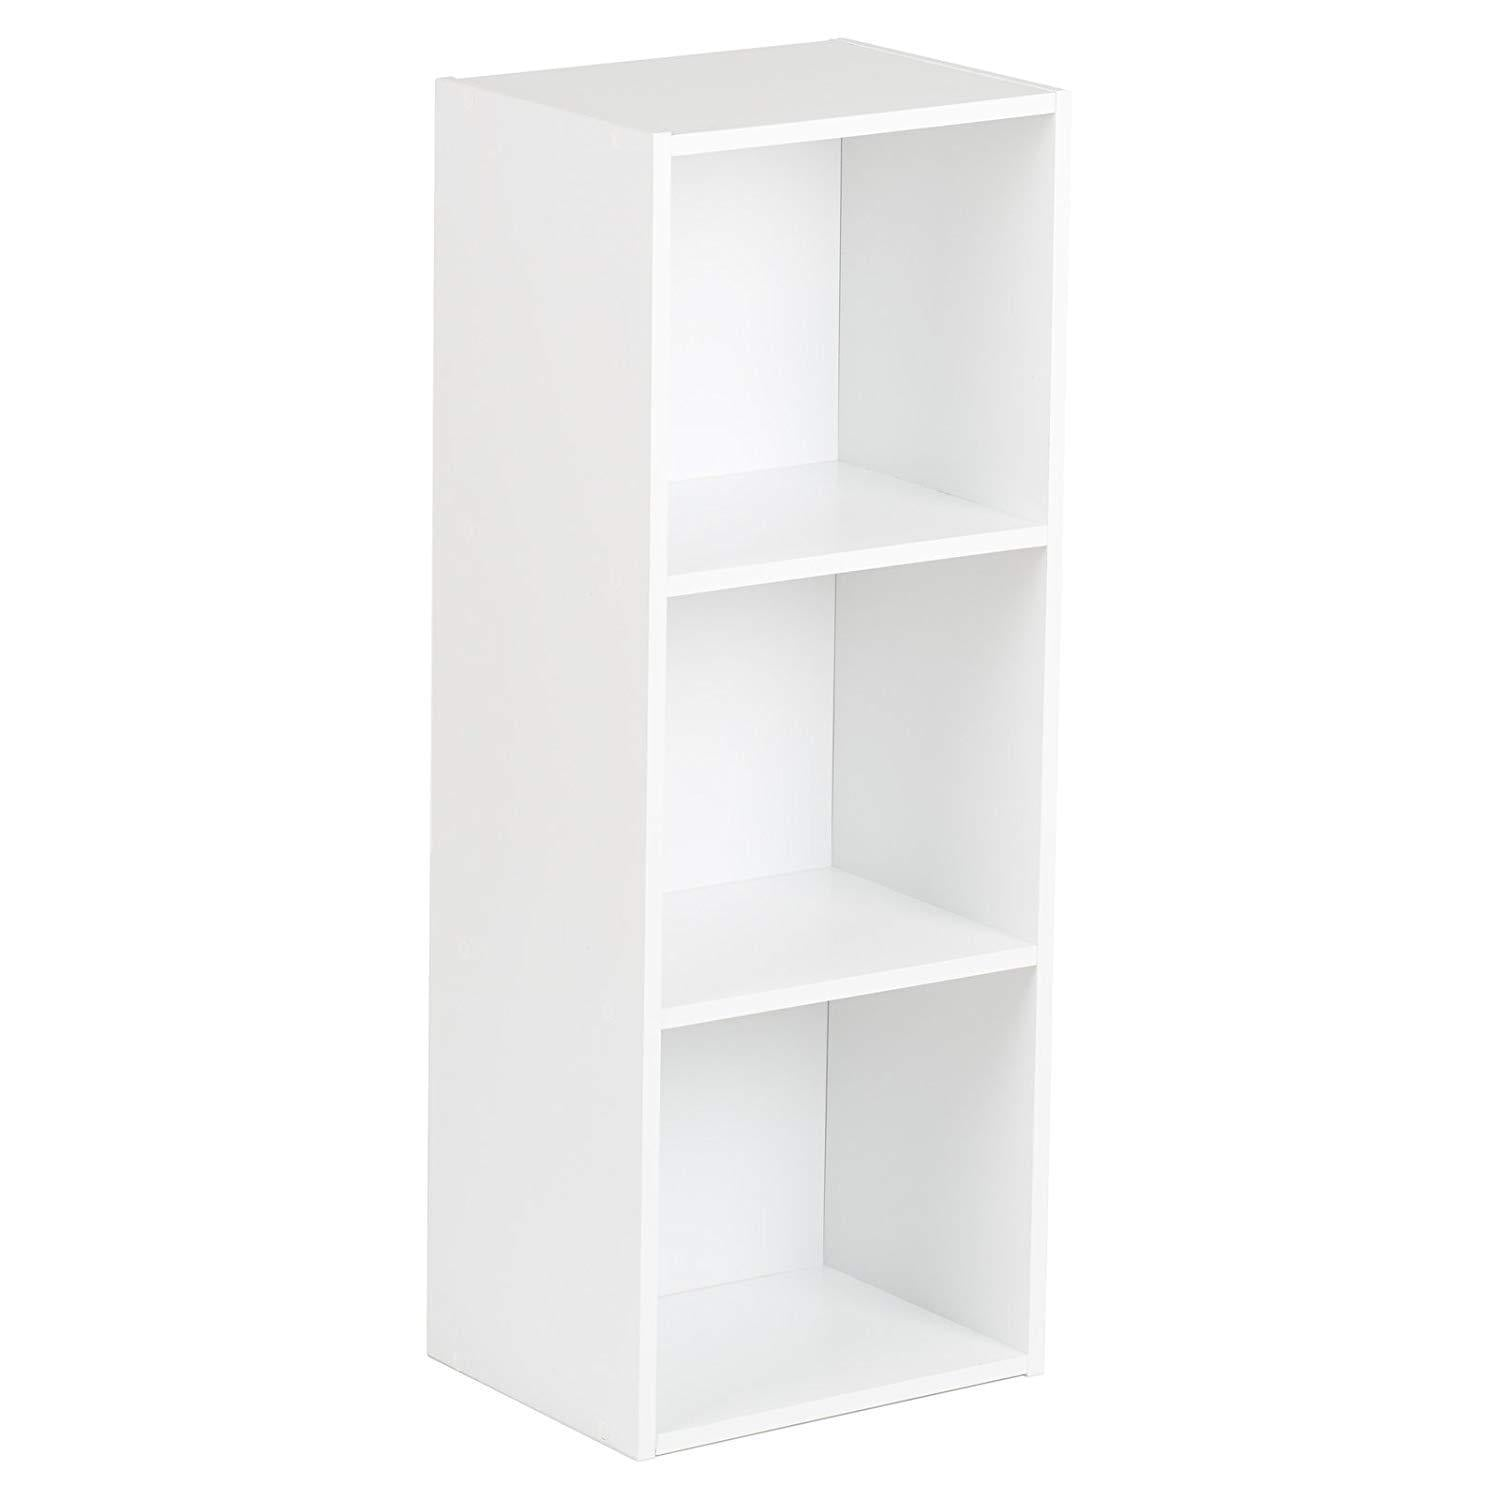 3 Tier White Bookcase Wooden Display Shelving Unit with storage box (No Basket) - Laura James